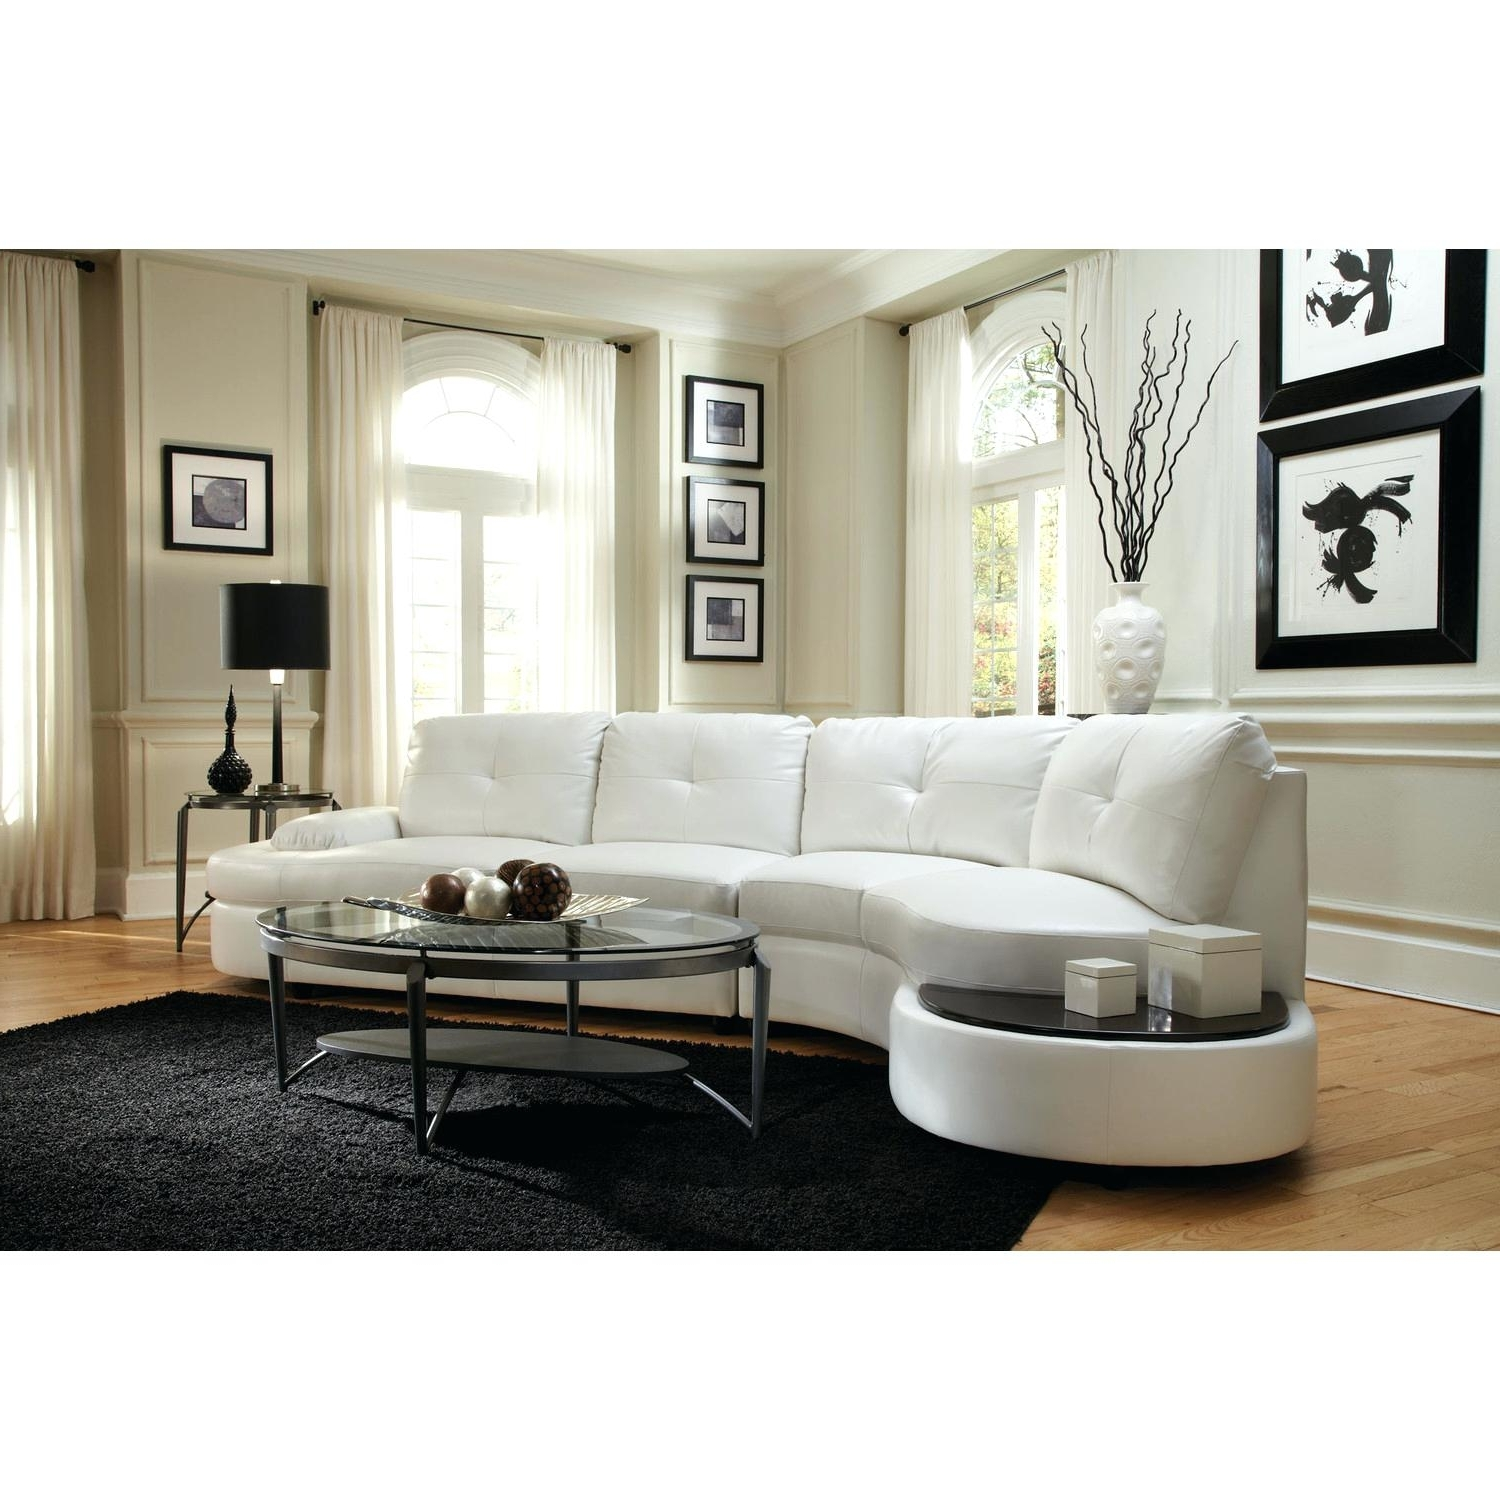 Ontario Canada Sectional Sofas Throughout Popular Best Of Sectional Sofas With Cup Holders (34 Photos) (View 11 of 15)